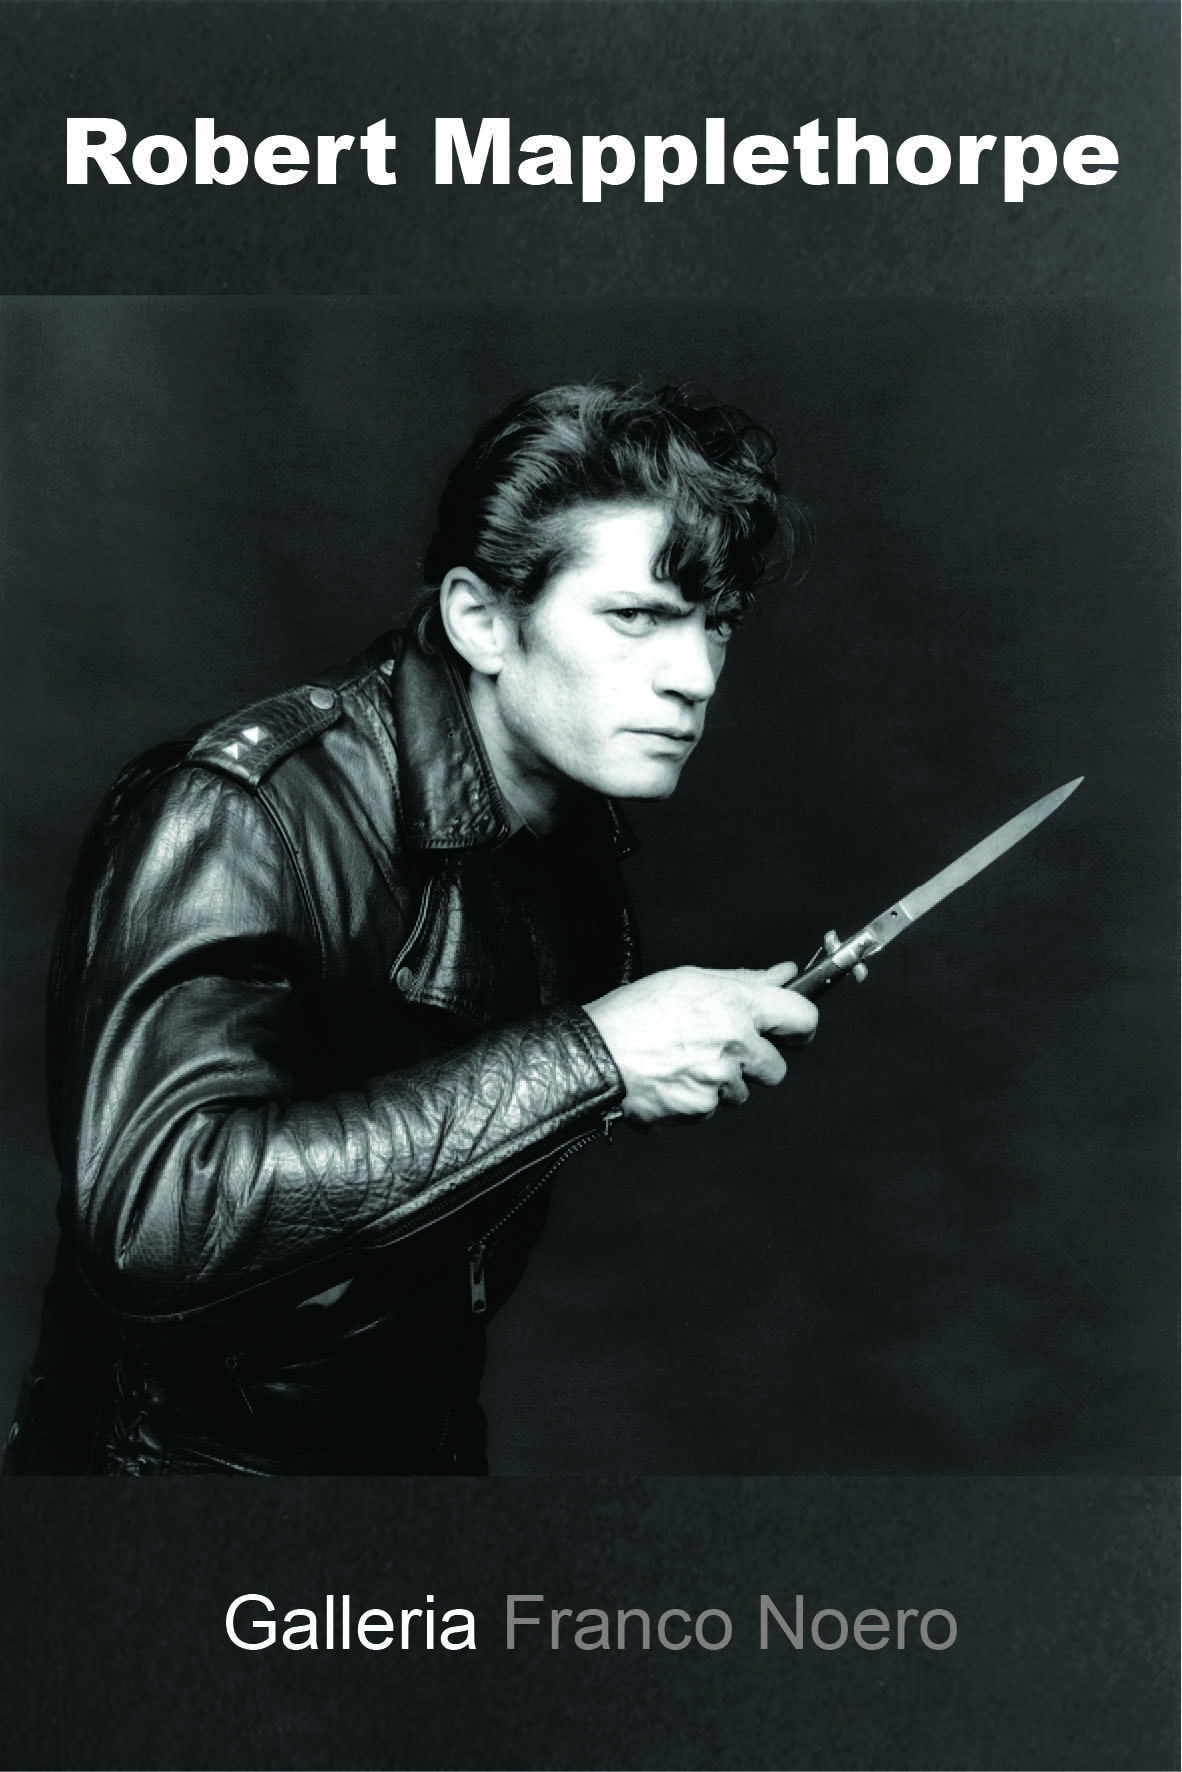 Robert Mapplethorpe � R. Mapplethorpe Foundation / Galleria Franco Noero